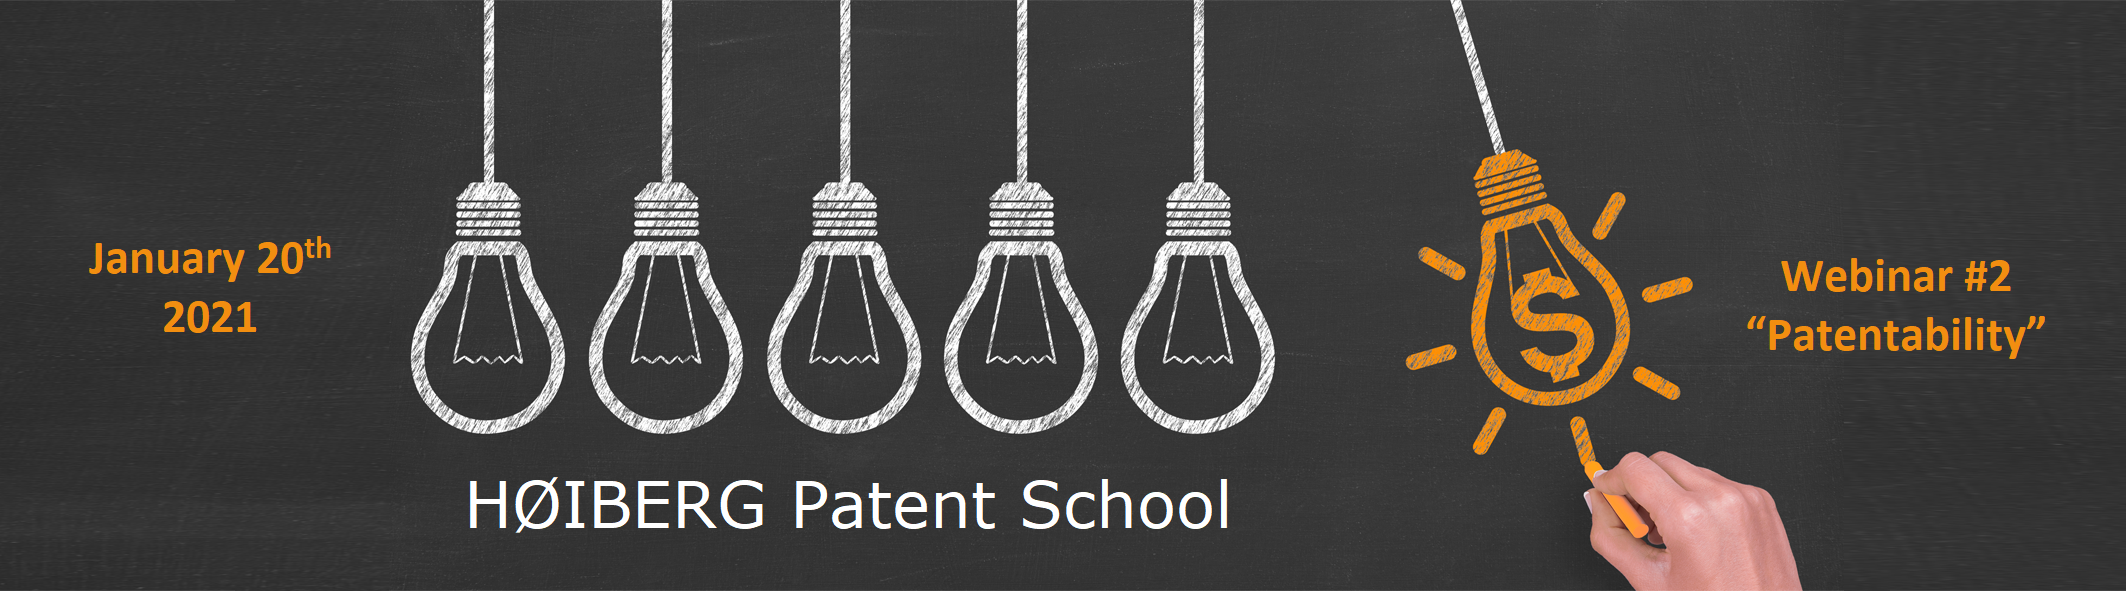 Welcome to HØIBERG Patent School: webinar on Patentability